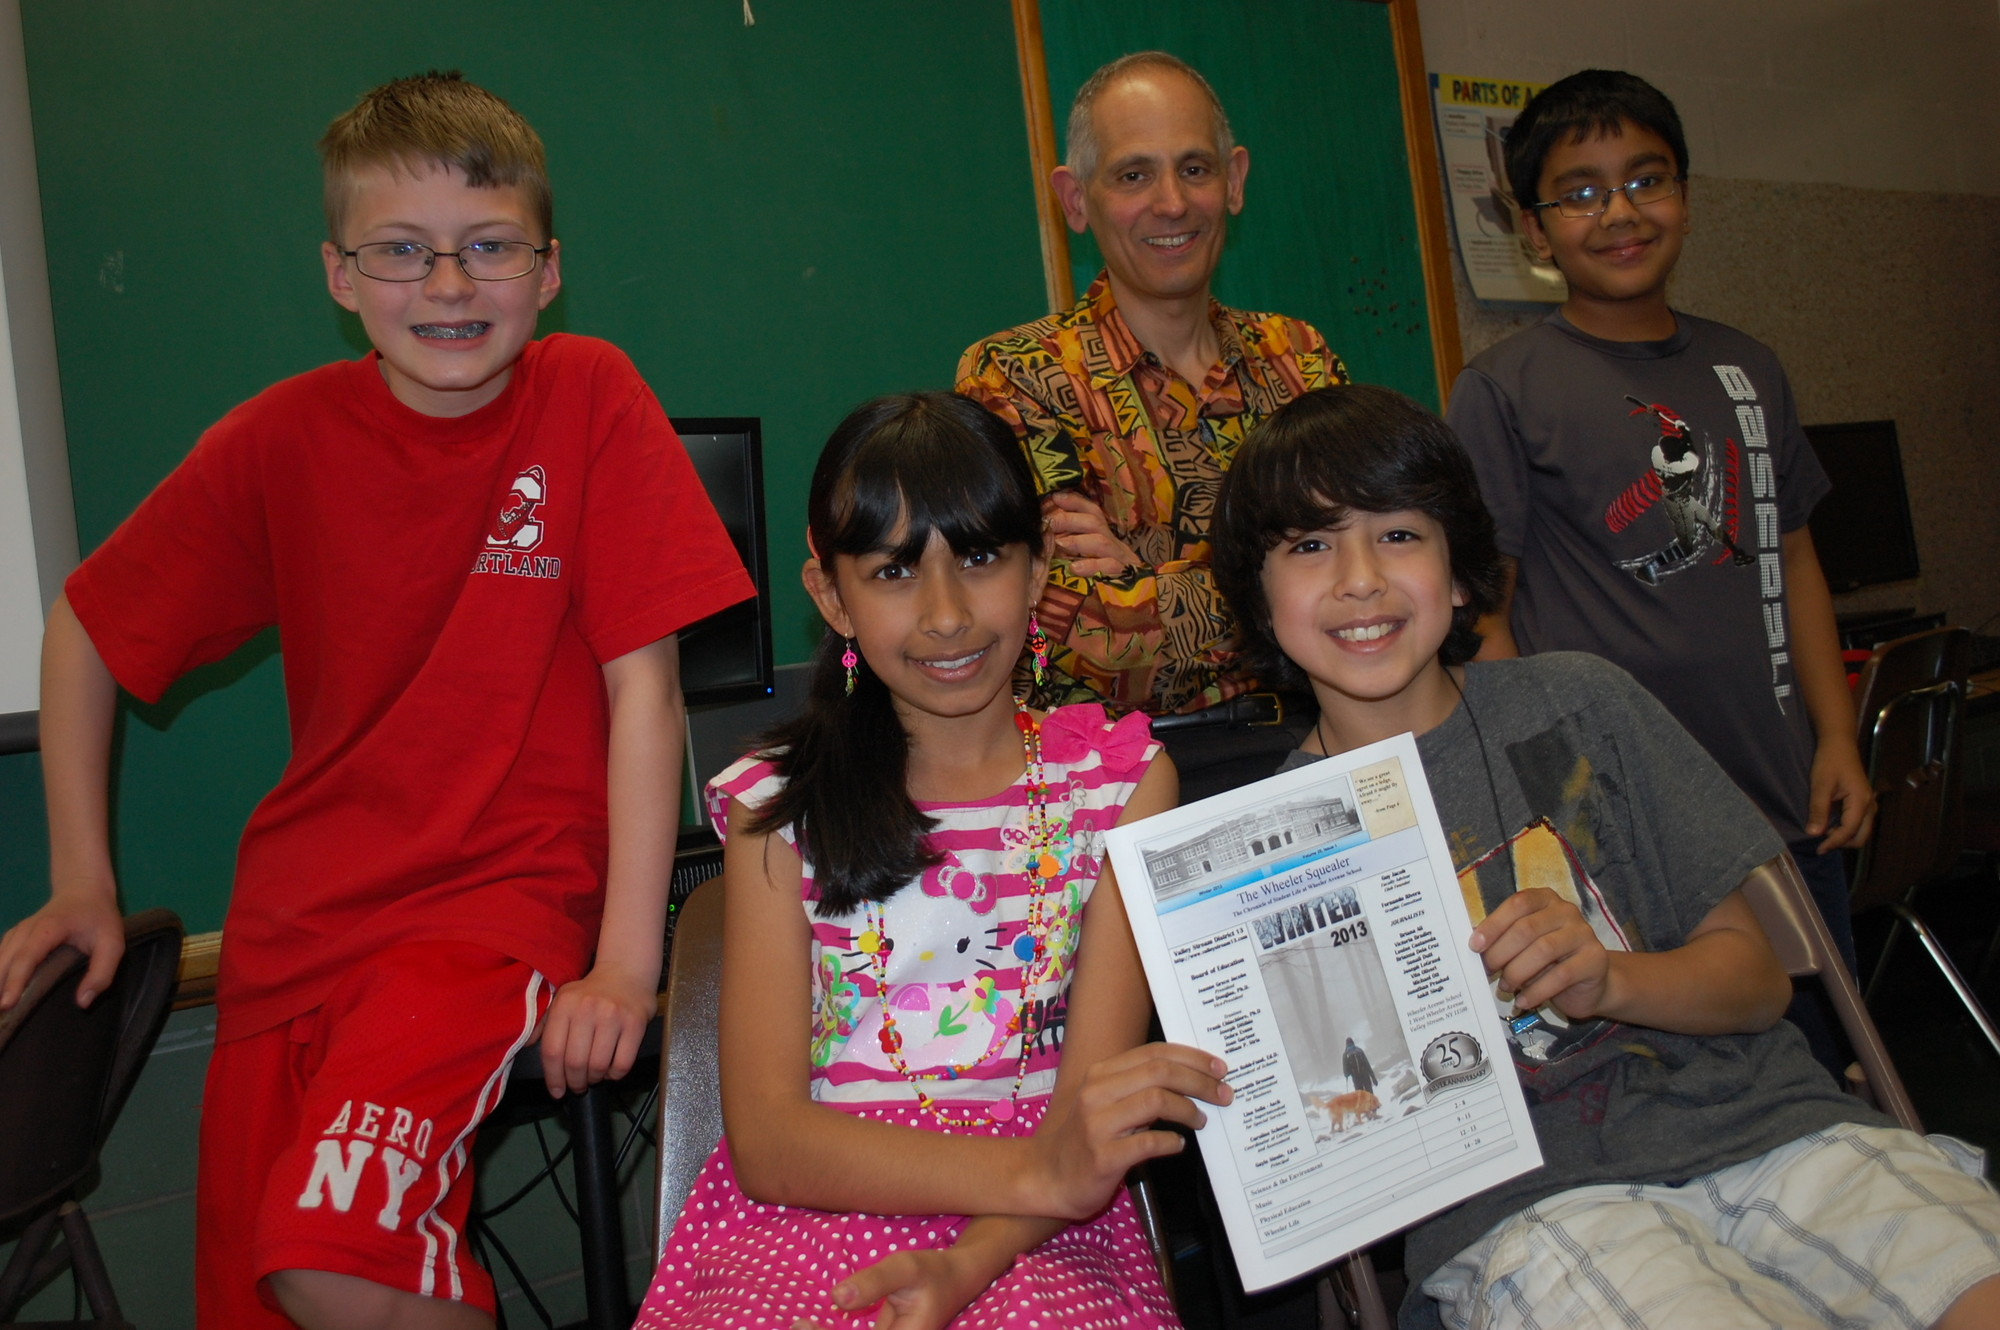 Wheeler Avenue School fifth-grader teacher Guy Jacob has been publishing the Wheeler Squealer for the pat 25 years. He is joined by members of this year's reporting staff, from left, Michael Ott, Solani Dutt, Vito Oliveri and Jonathan Prashad.